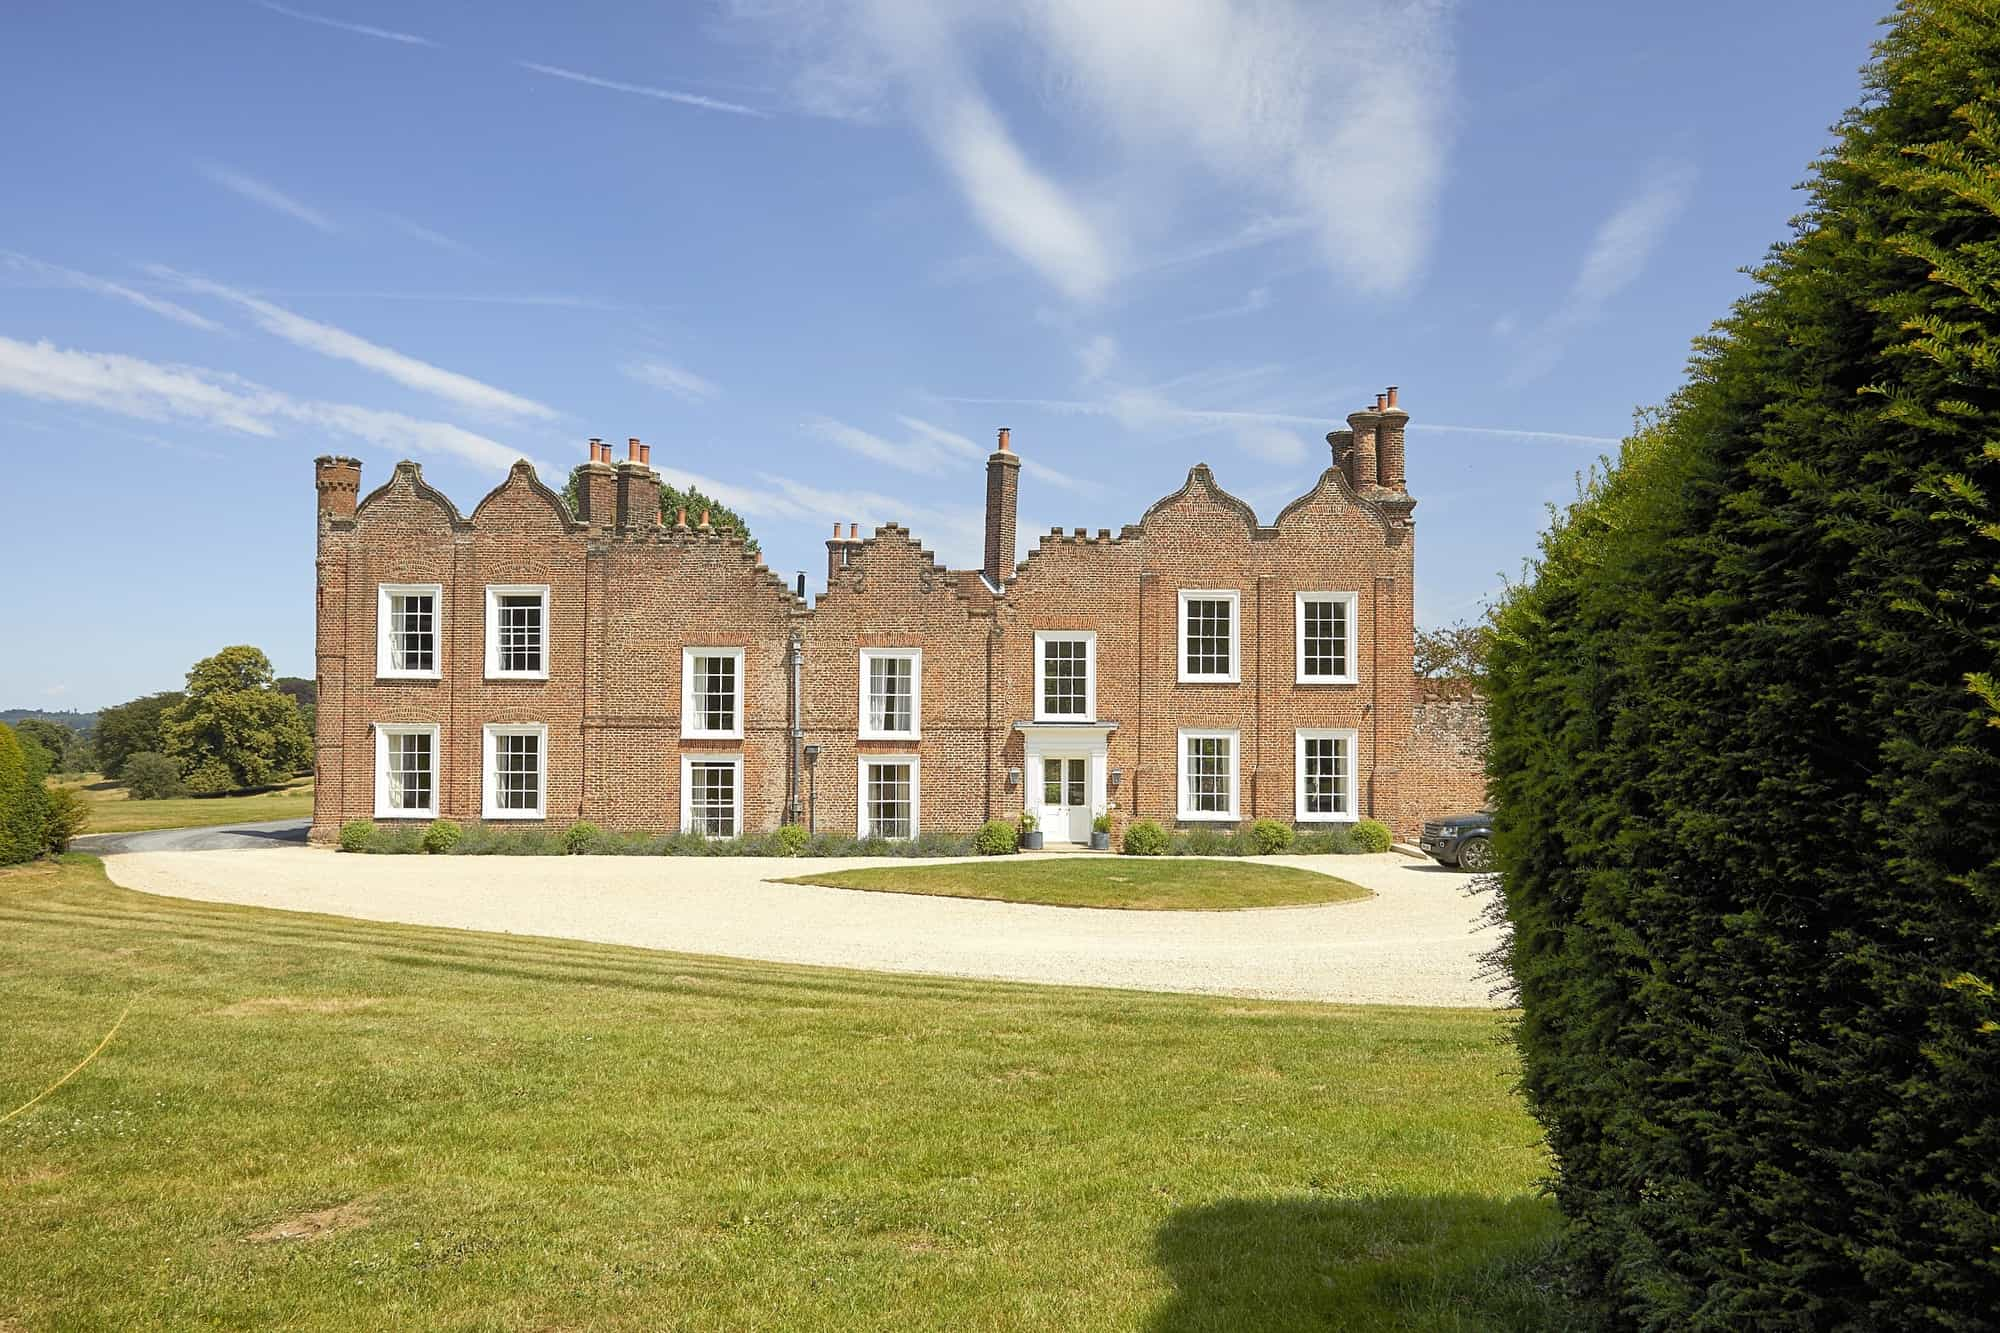 Leighton Manor LU7 - An incredible 10 bedroom Elizabethan Manor House set in 200 acres and renovated to provide high end stylish contemporary interiors - The Location Guys